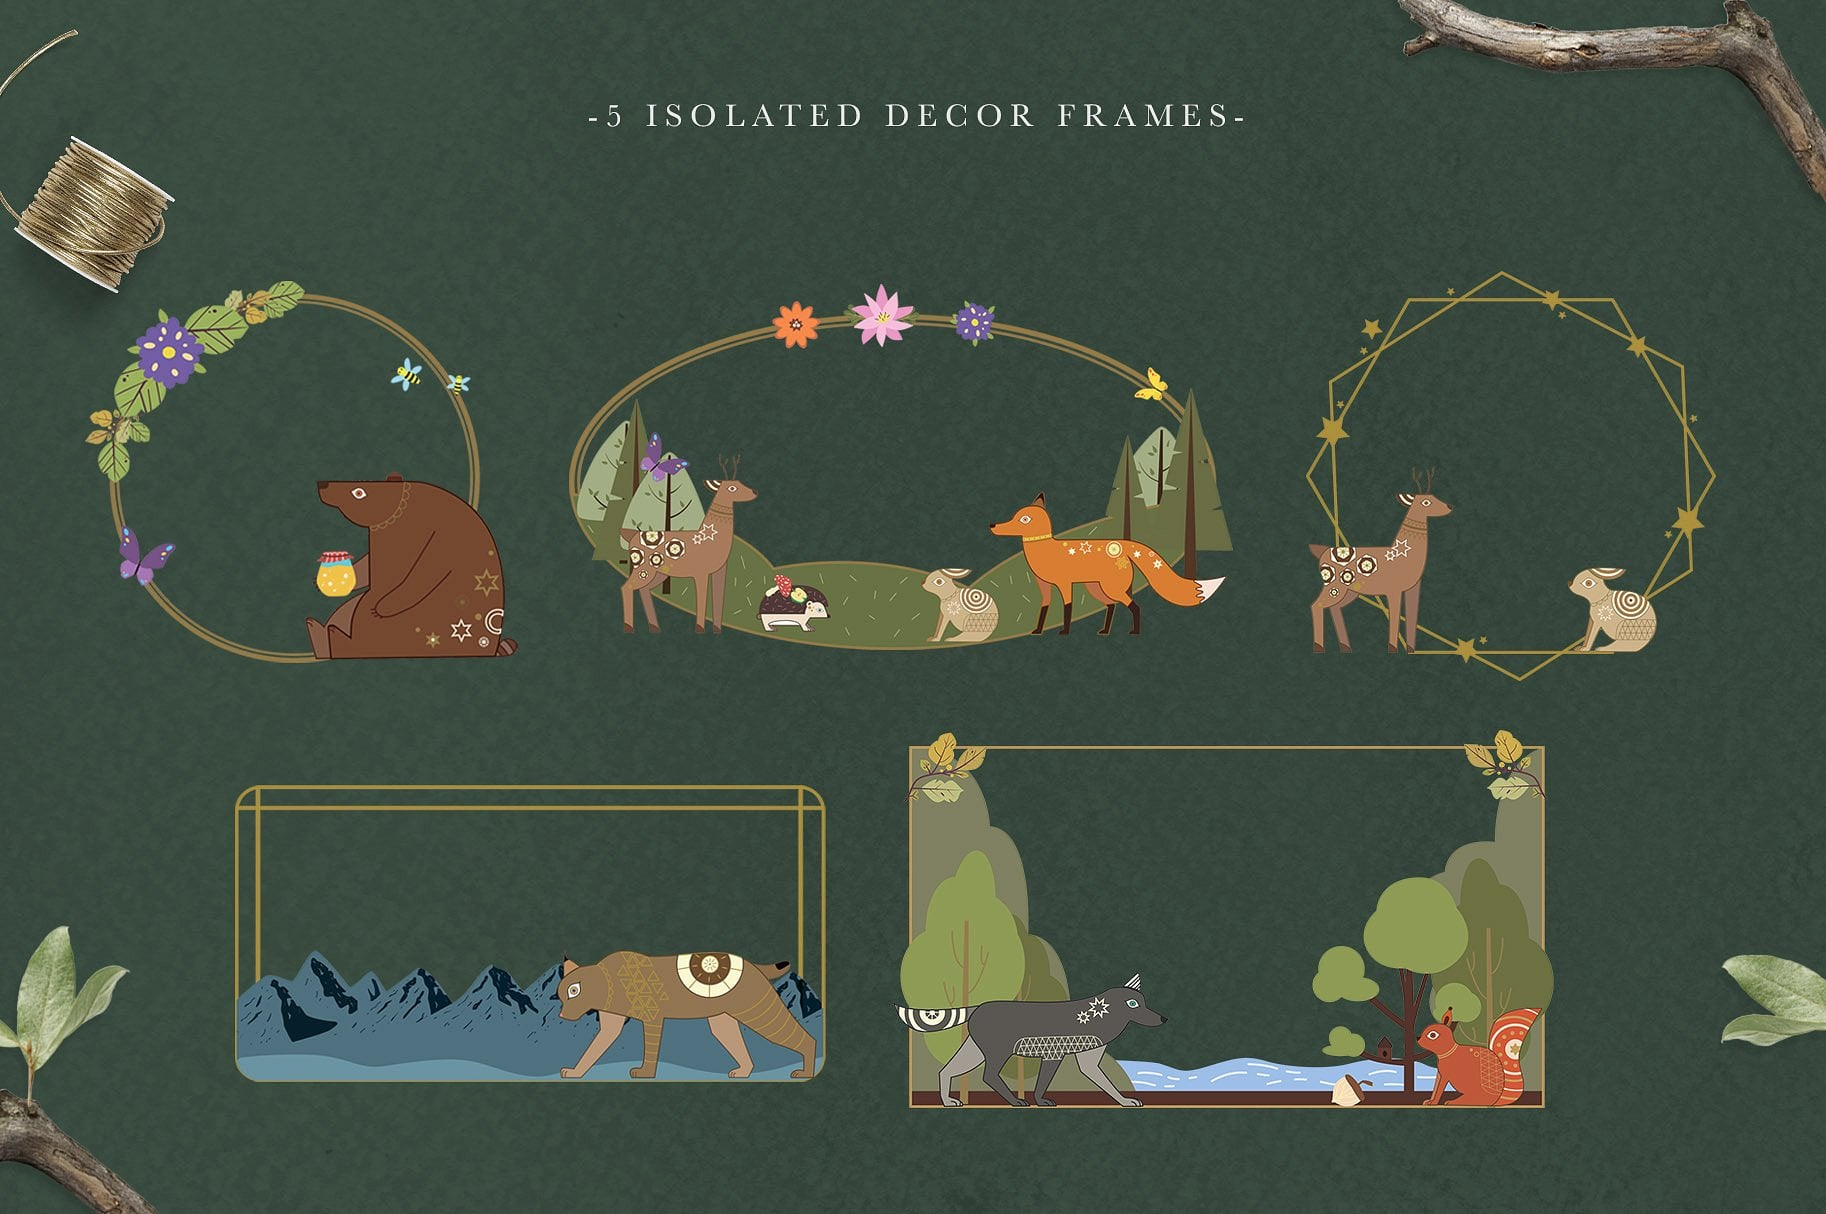 Noble green with thin frames in gold and animals.